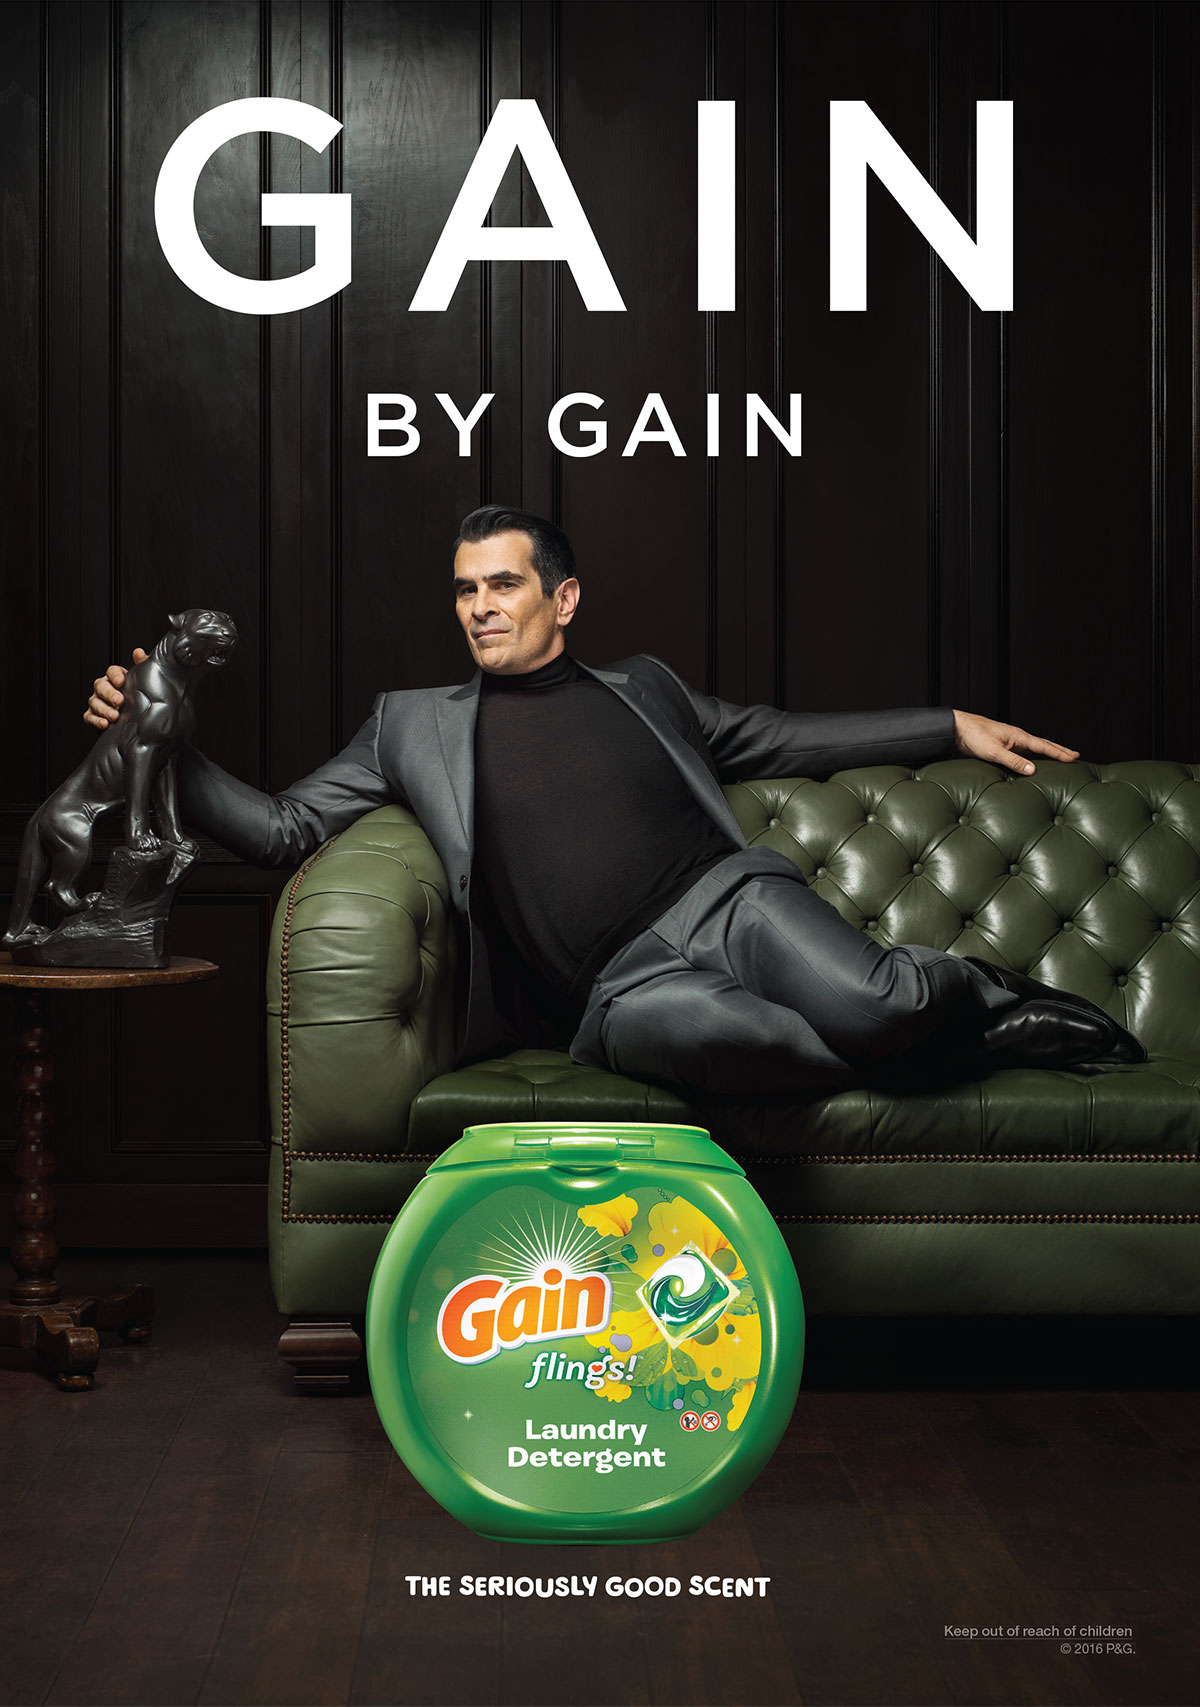 Gain-advertisingbyscottcouncil